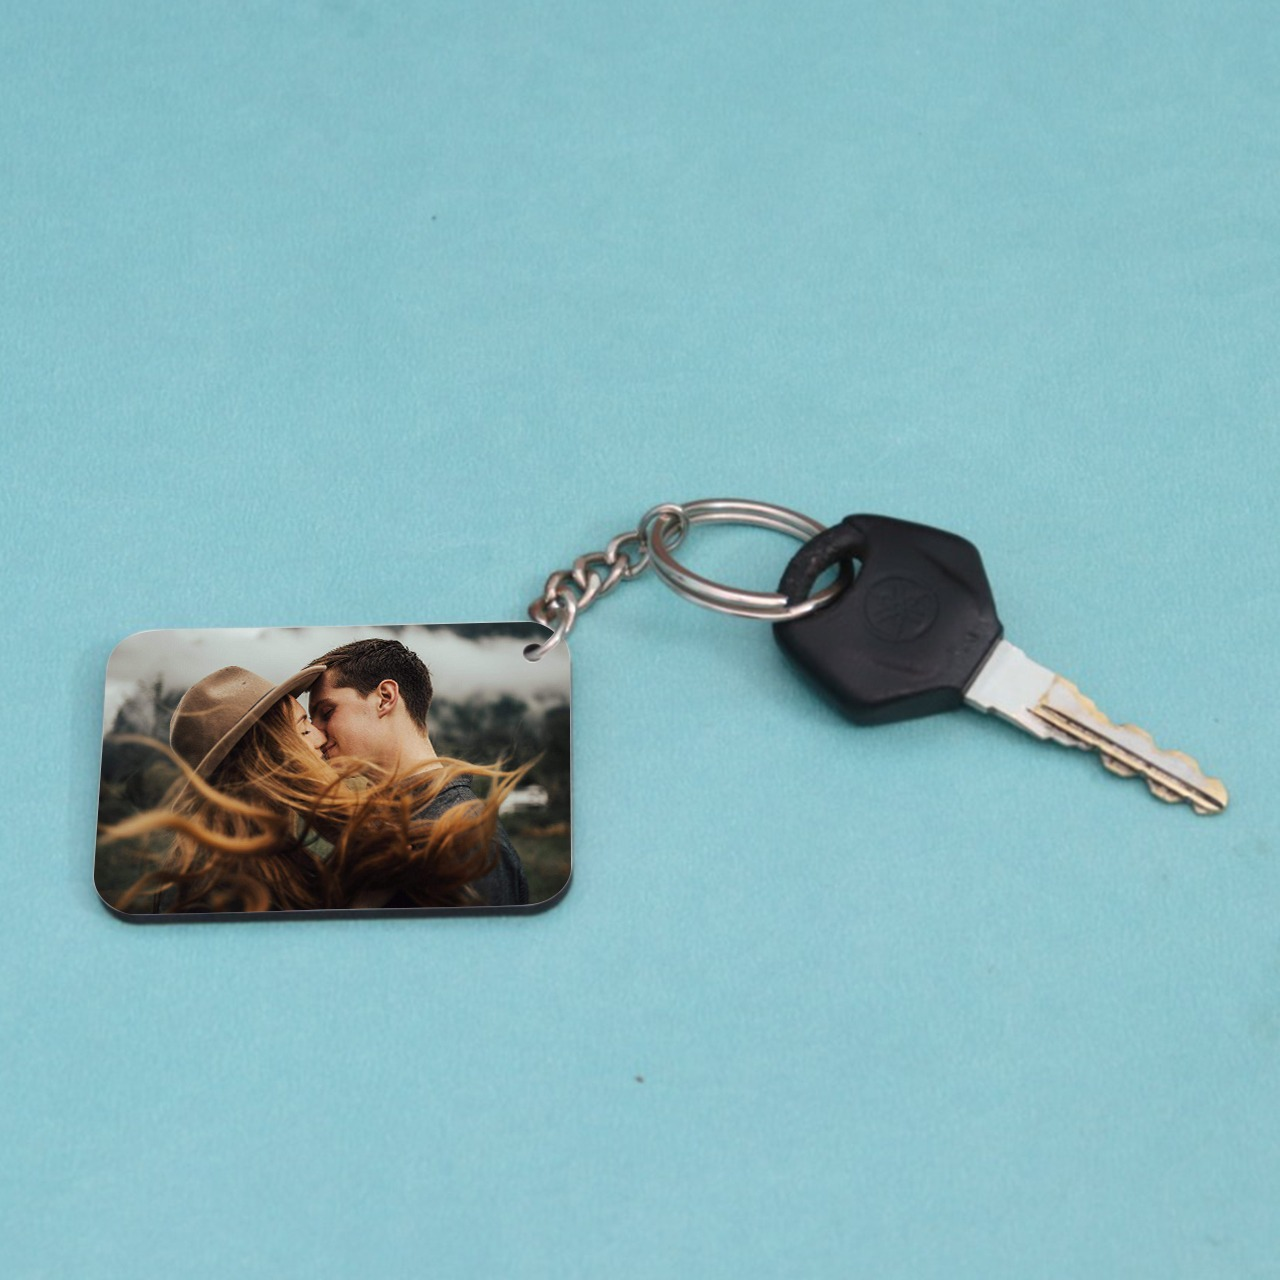 Personalized Keychain